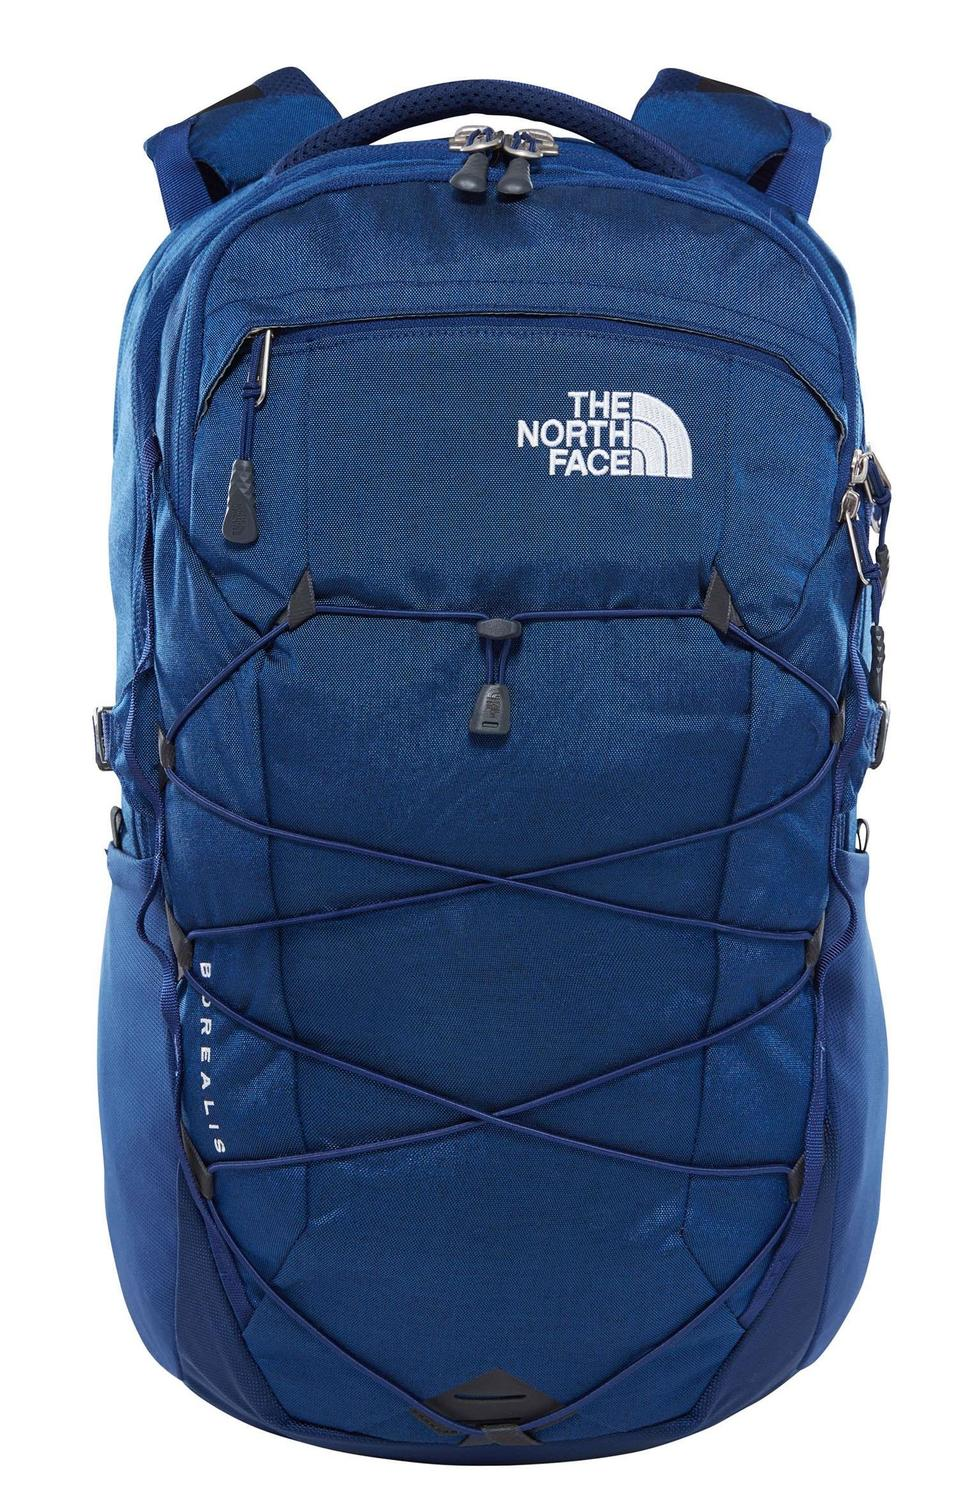 Zaino The North Face Borealis Porta Pc Fino A 15